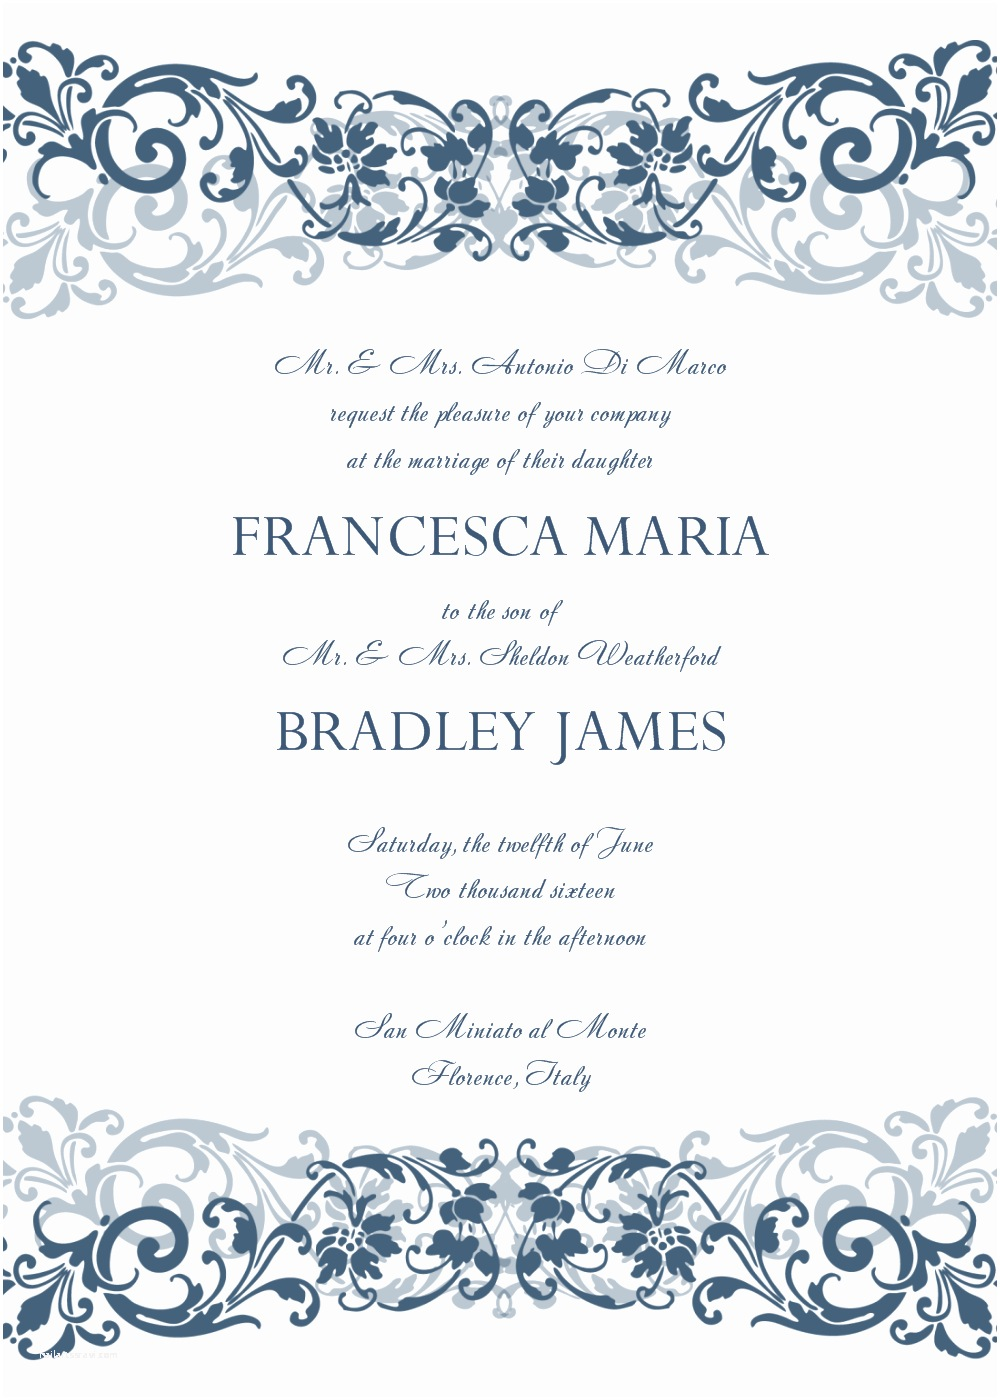 Wedding Invitation Design Templates Free Download Free Wedding Design Invitation Template